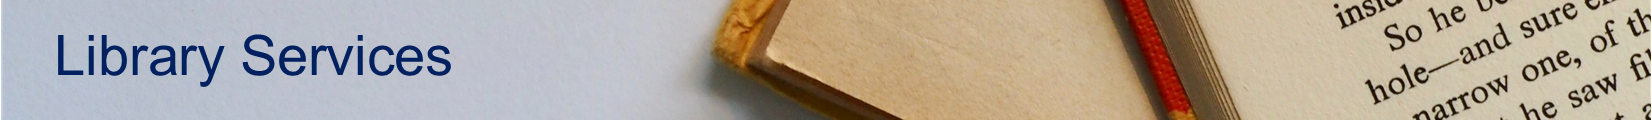 Banner that says Library Services. A corner of an open book is visible